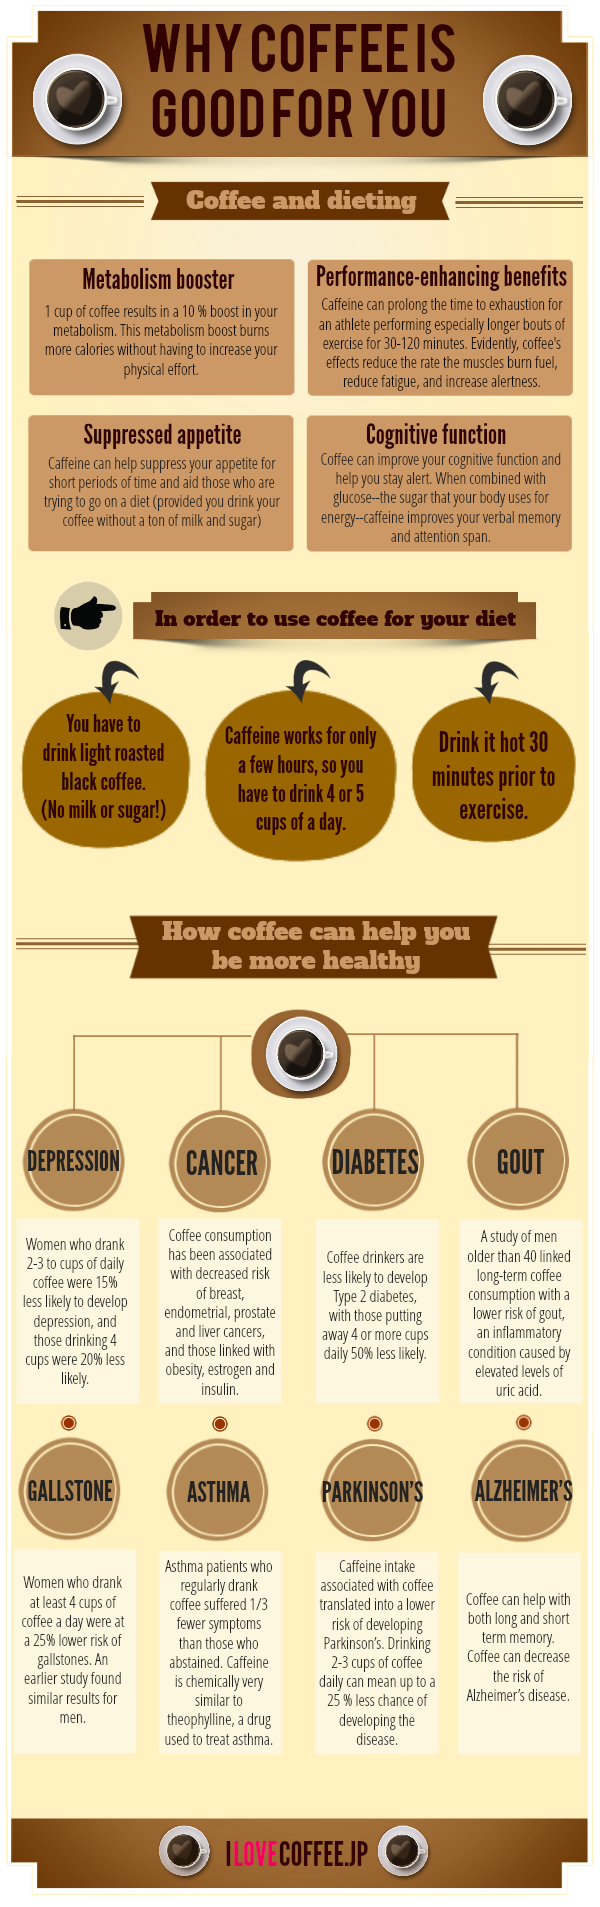 Why coffee is good